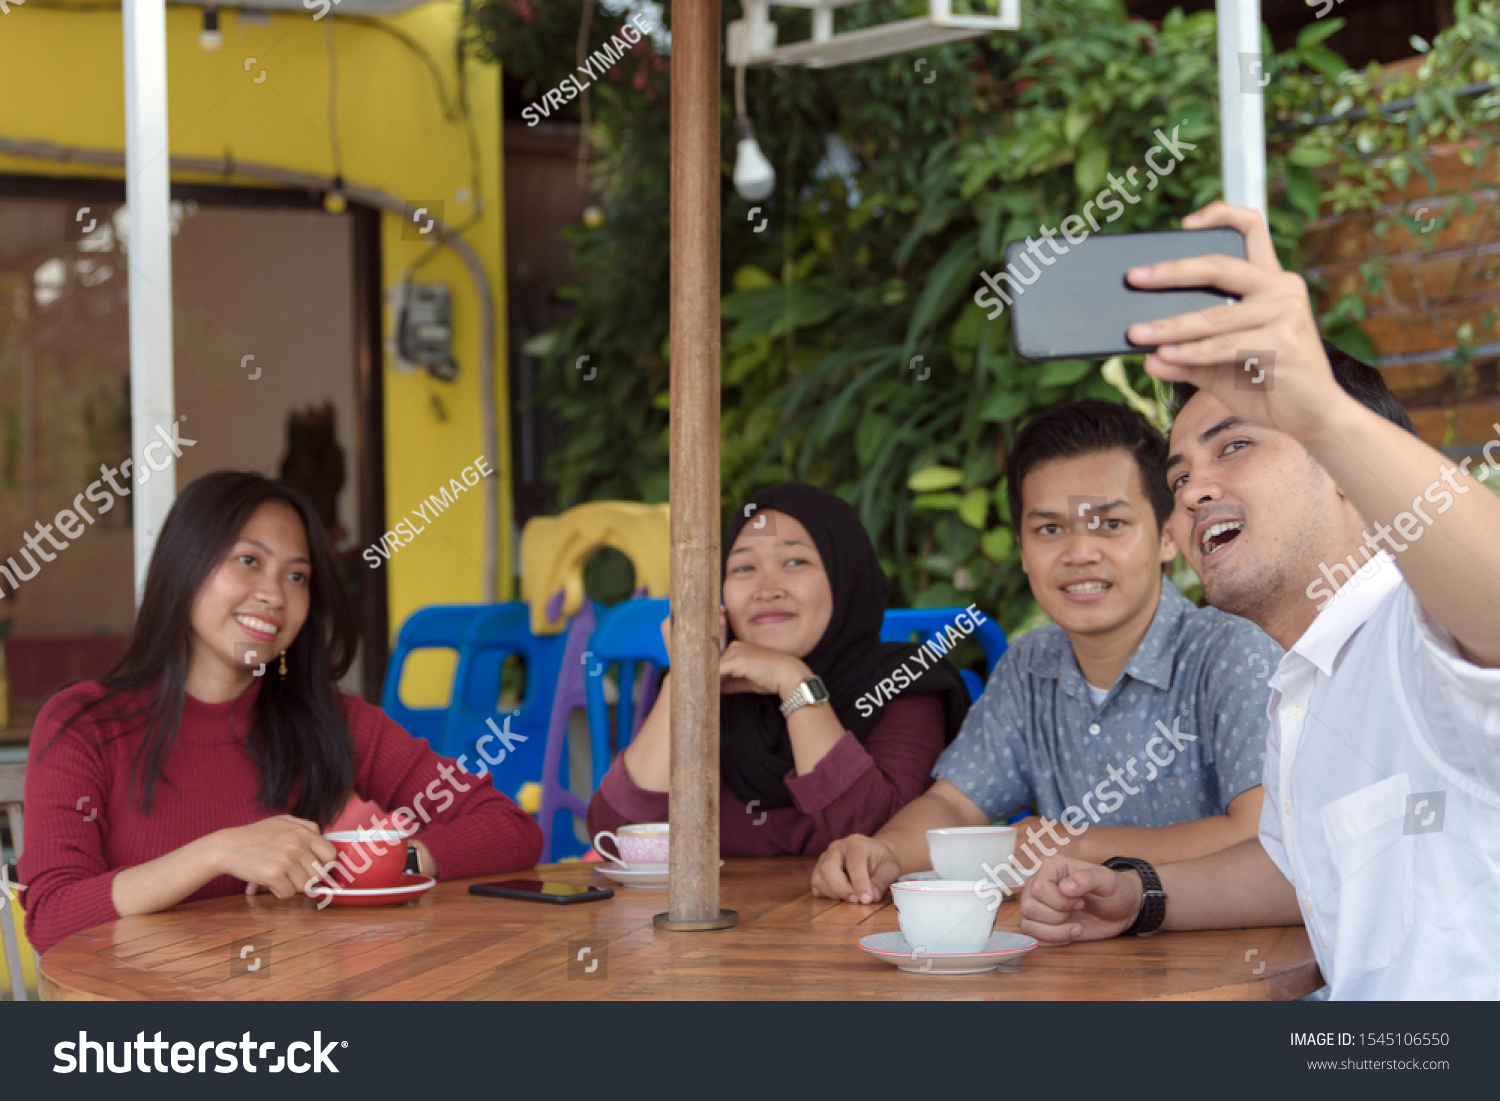 Multiracial group of four asian friends having a coffee together. Two women and two men at cafe, talking, laughing and enjoying their time while taking group selfie. #1545106550